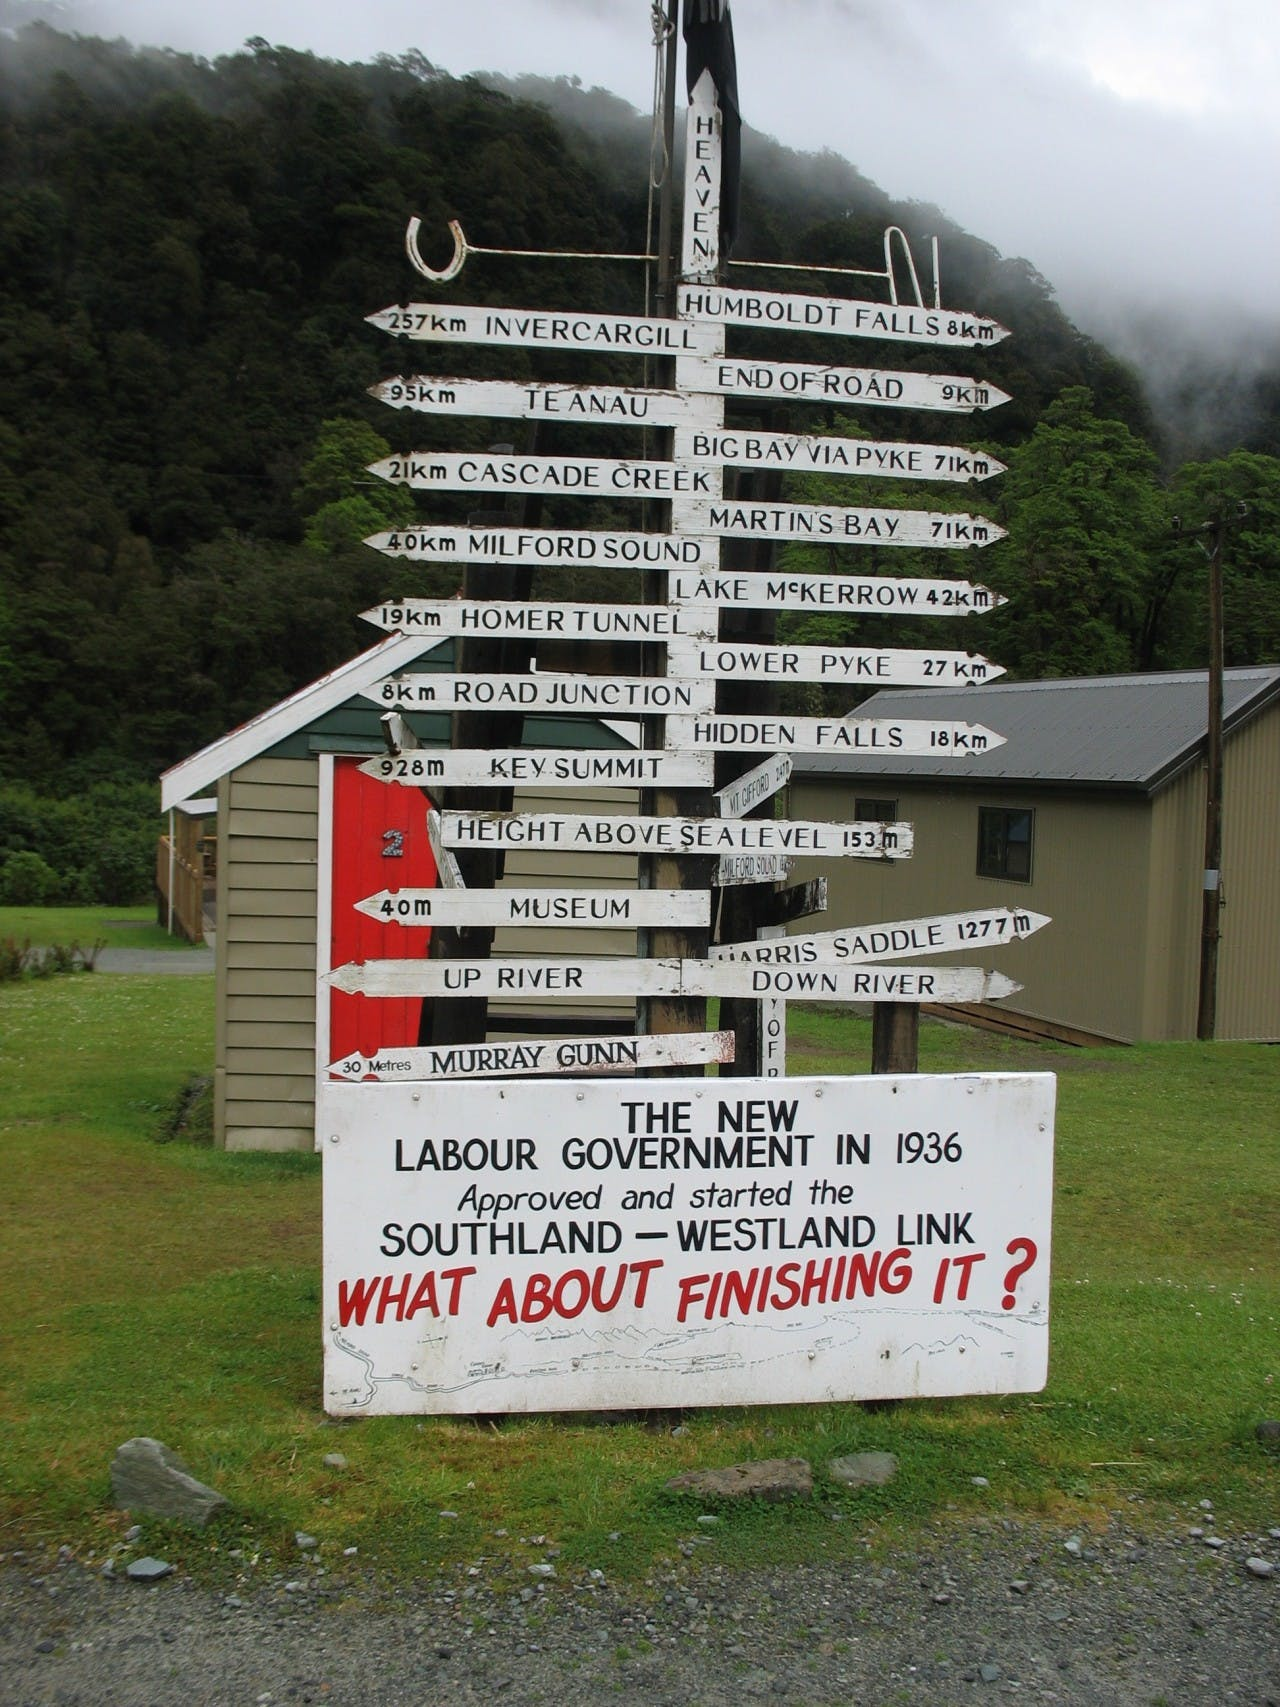 The Gunn's Camp signpost shows the way to Martins Bay and Heaven. PHOTO: Paul Rush